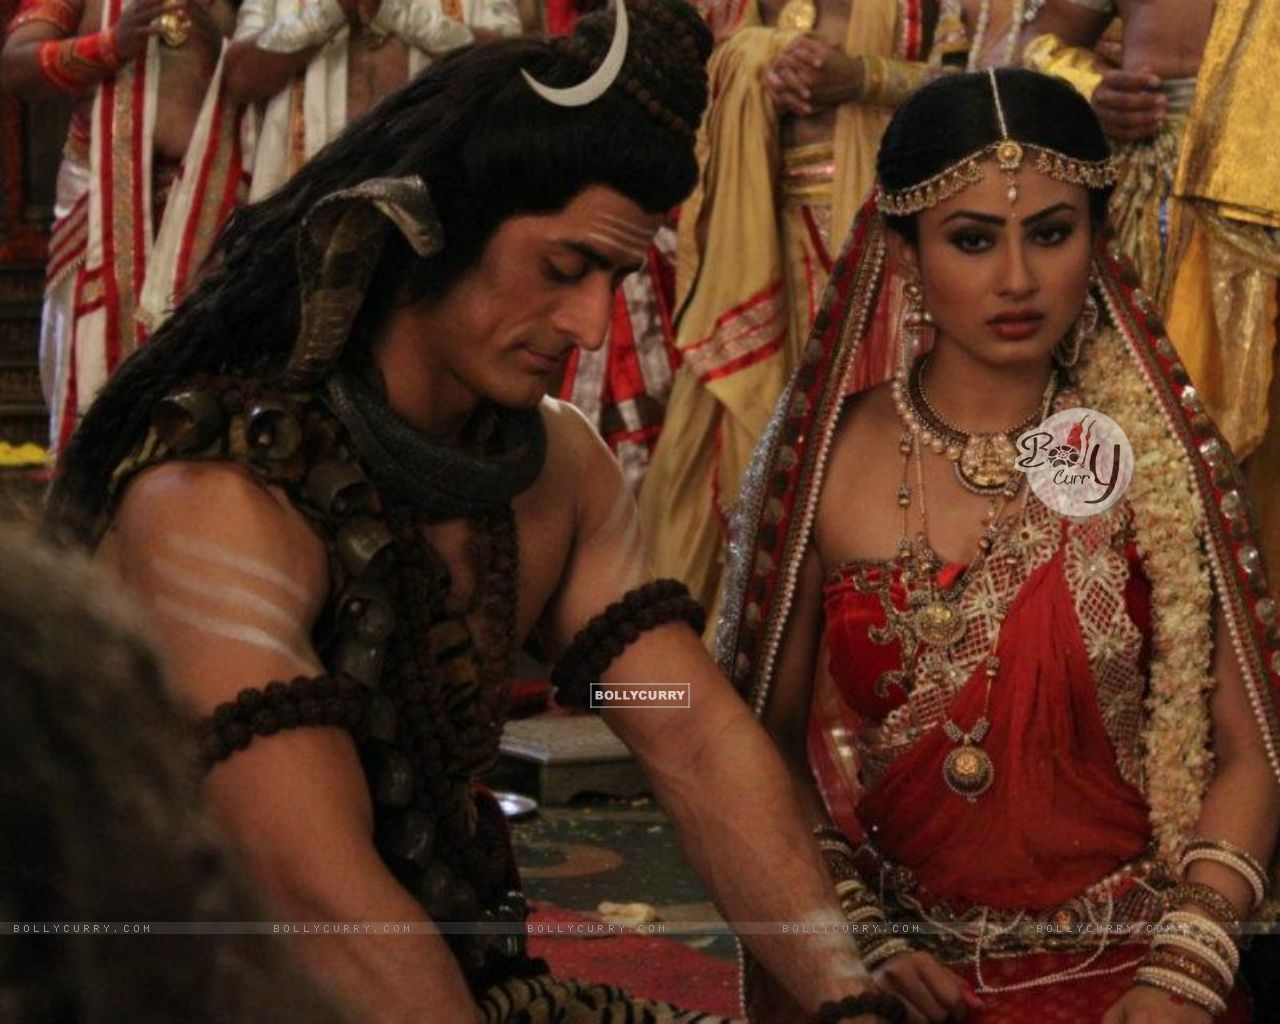 Wallpaper size image of celebrities Mohit Raina and Mouni Roy